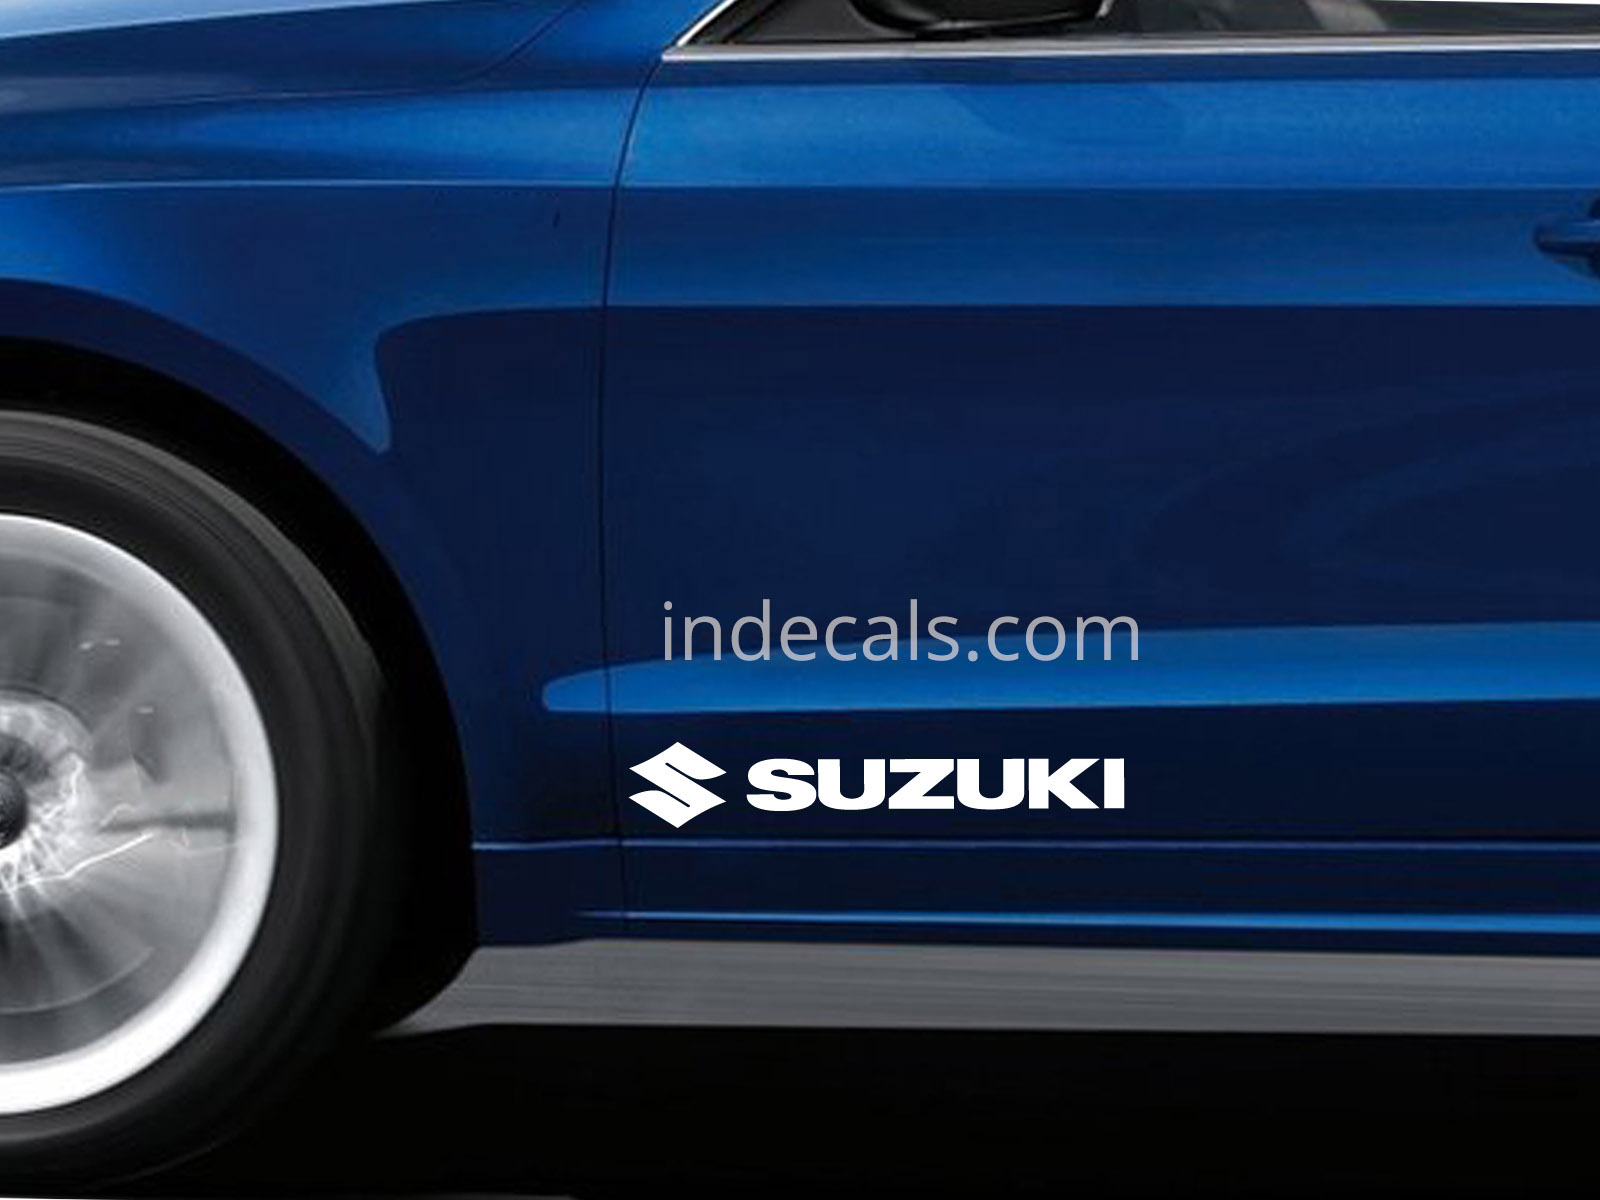 2 x Suzuki Stickers for Doors Large - White